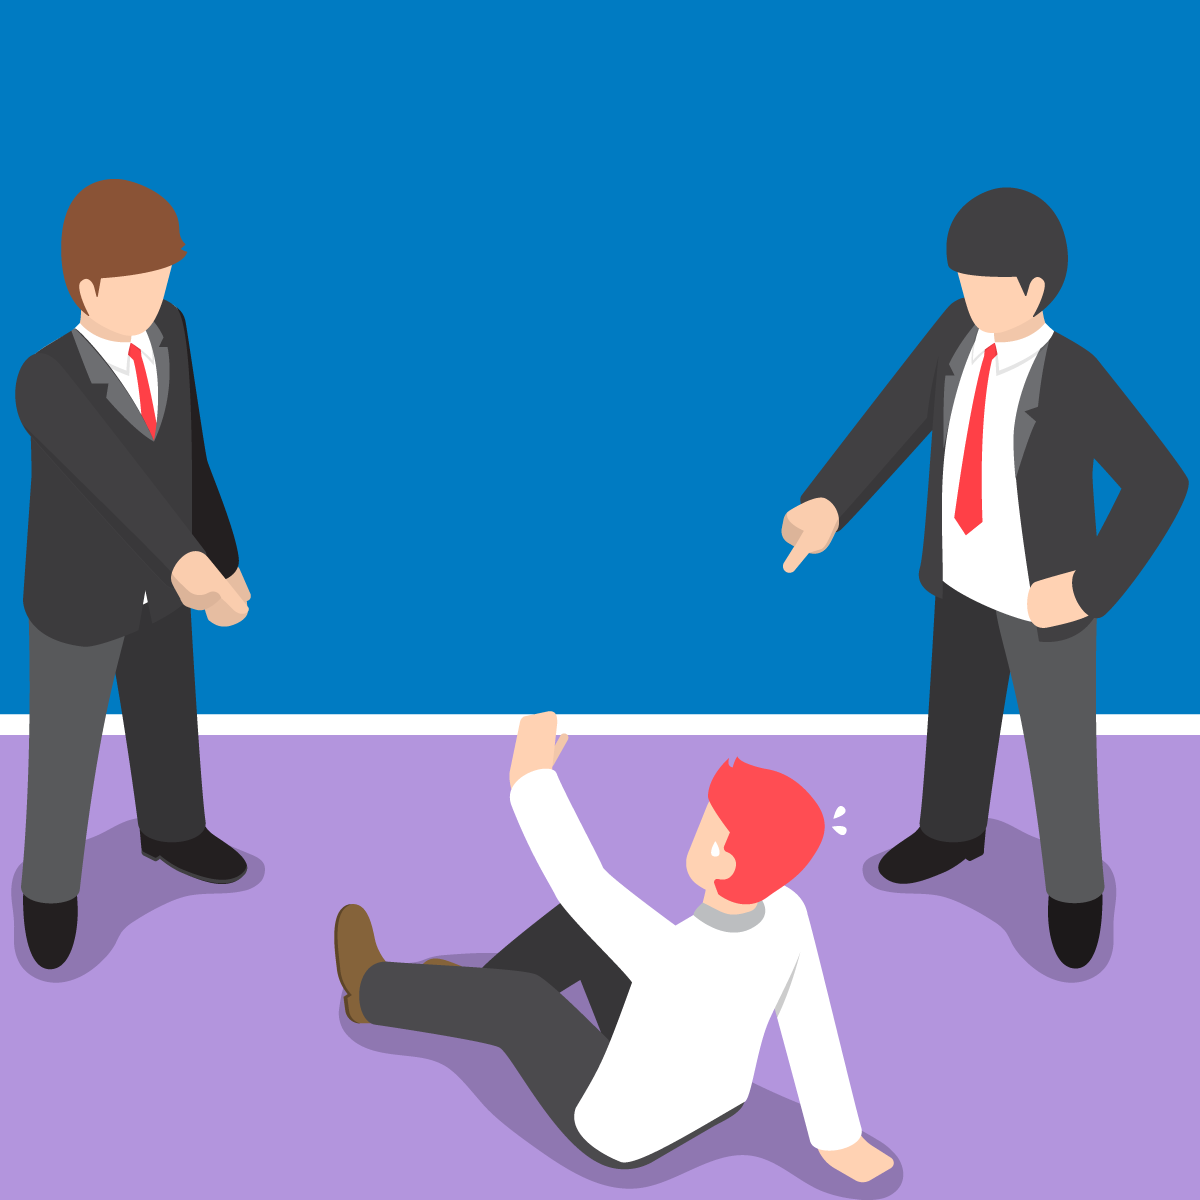 Should there be harsher punishments for bullying pros and cons